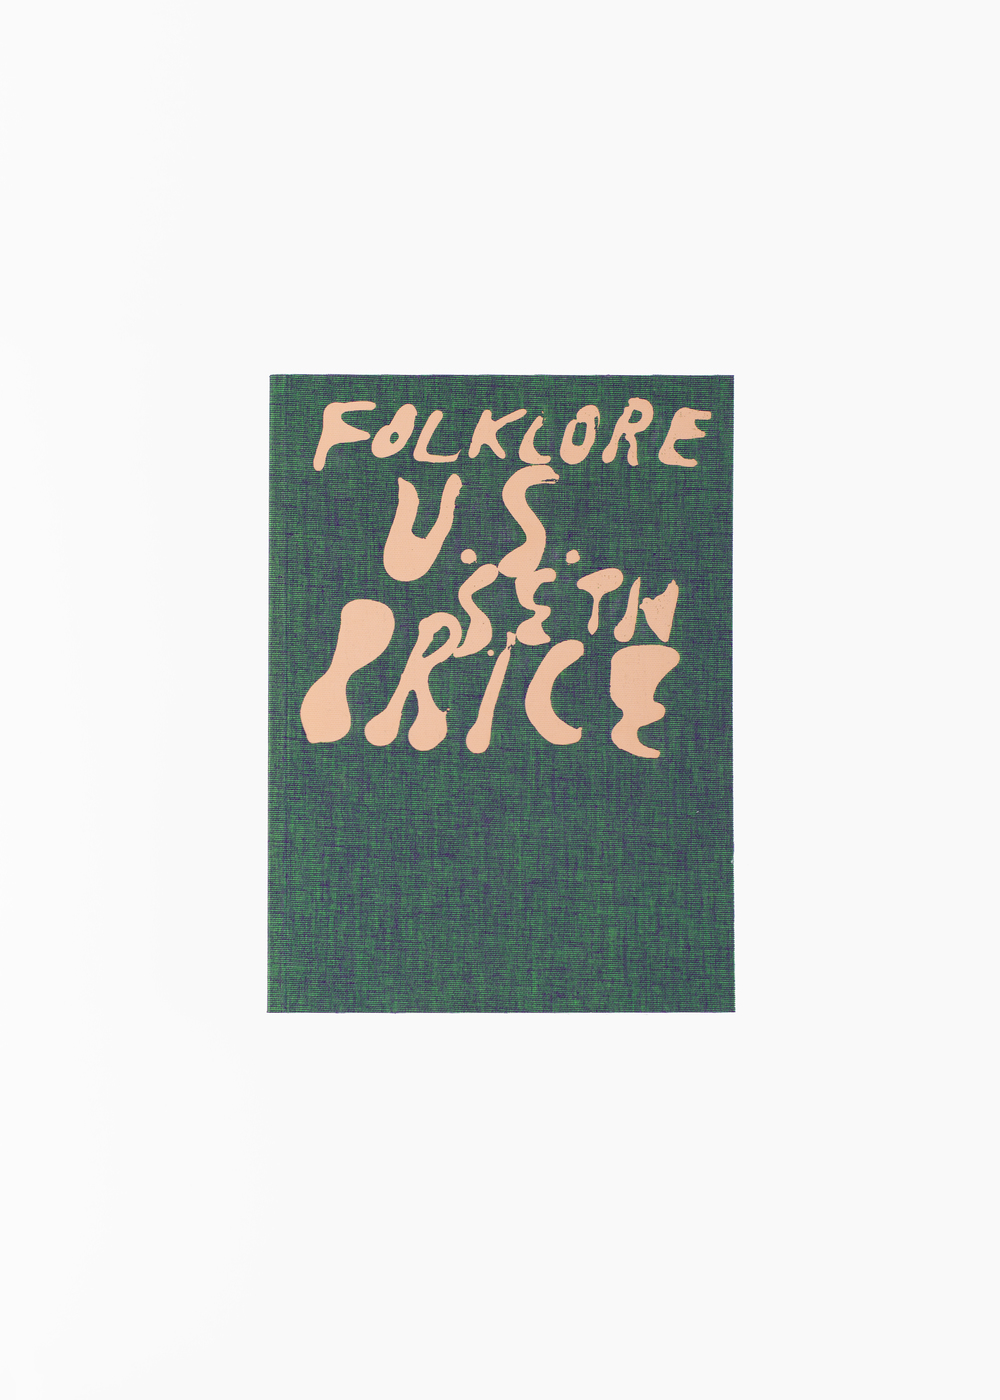 Seth Price - Folklore U.S.</br>240 pages 17 x 23 cm</br>Walther König 2015</br>Sold out